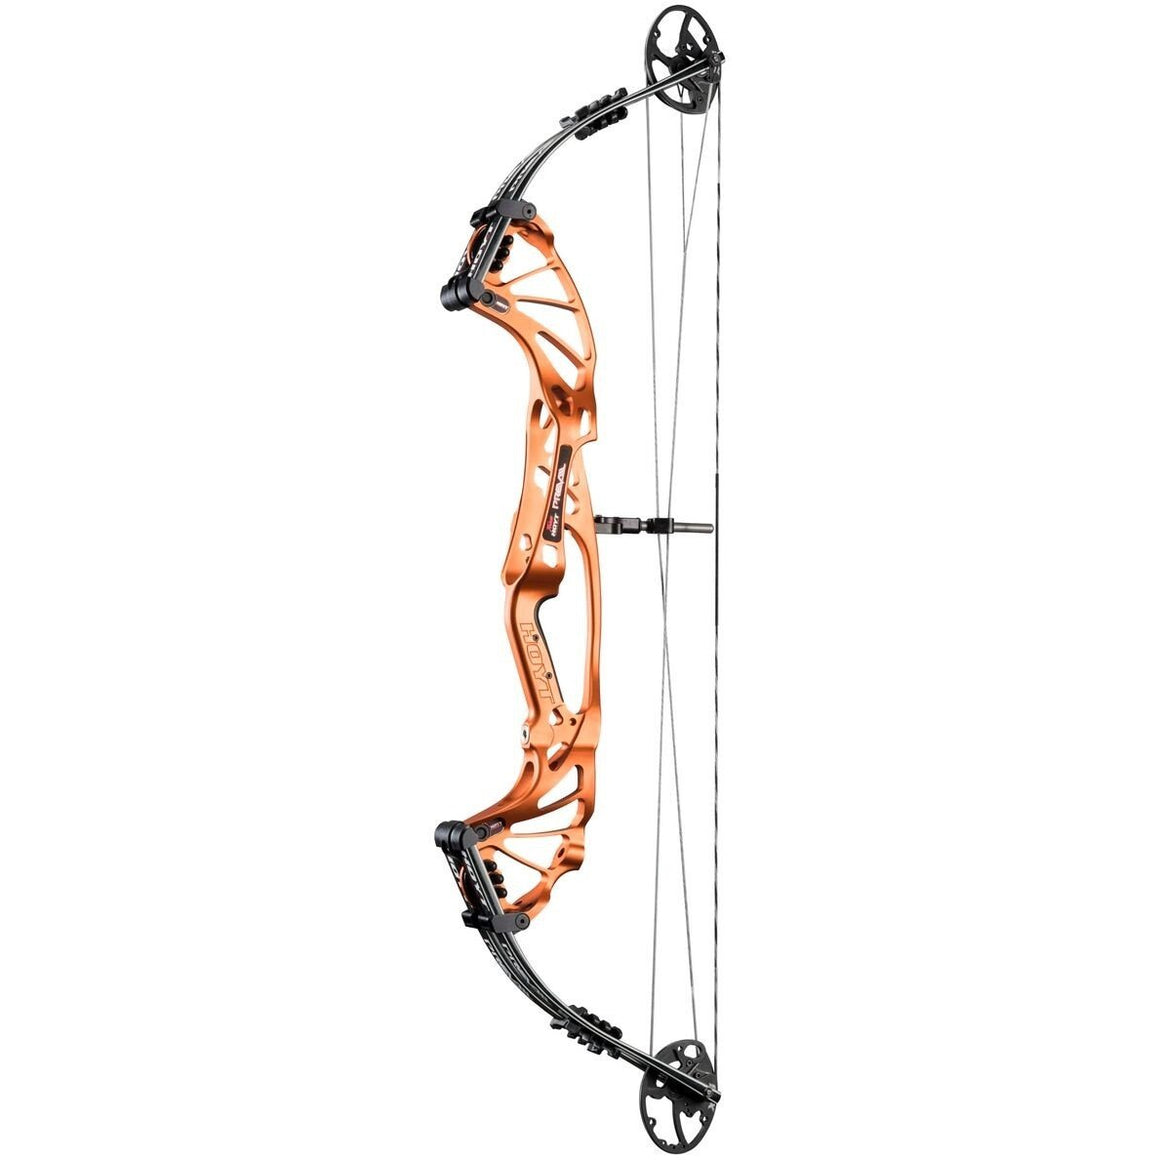 Hoyt Prevail 37 SVX Compound In Stock